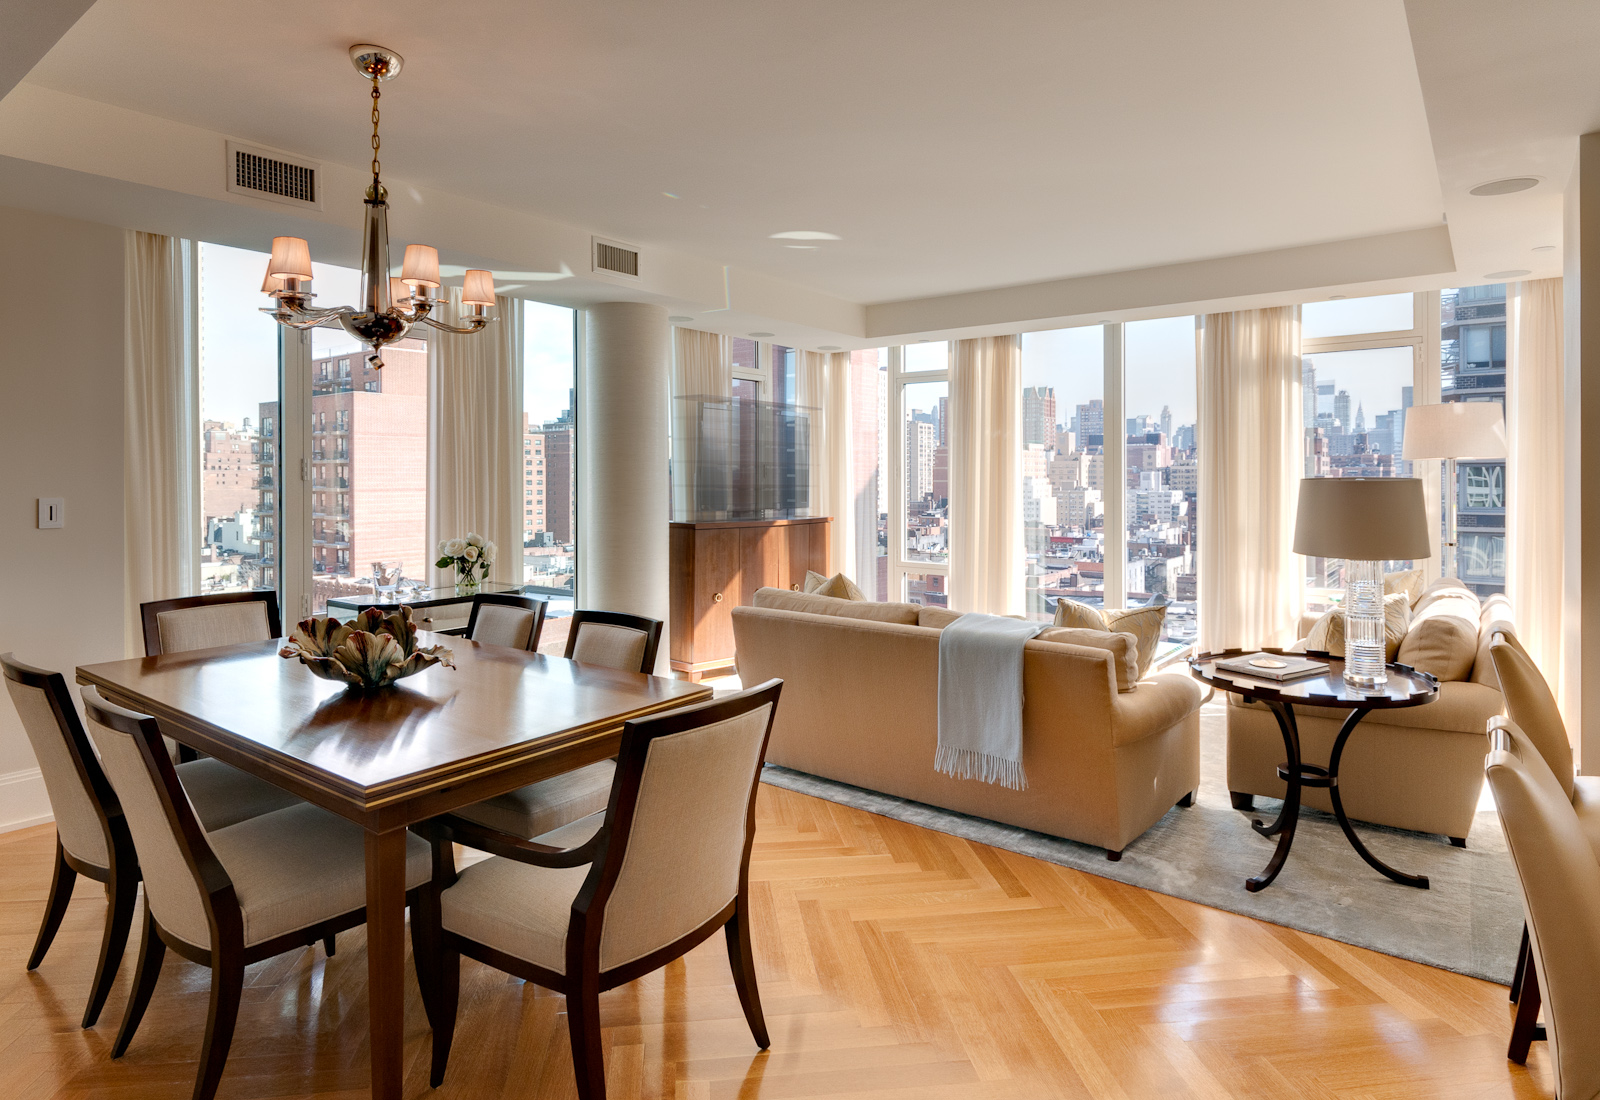 Decorate A Dining Room Decor10 Blog